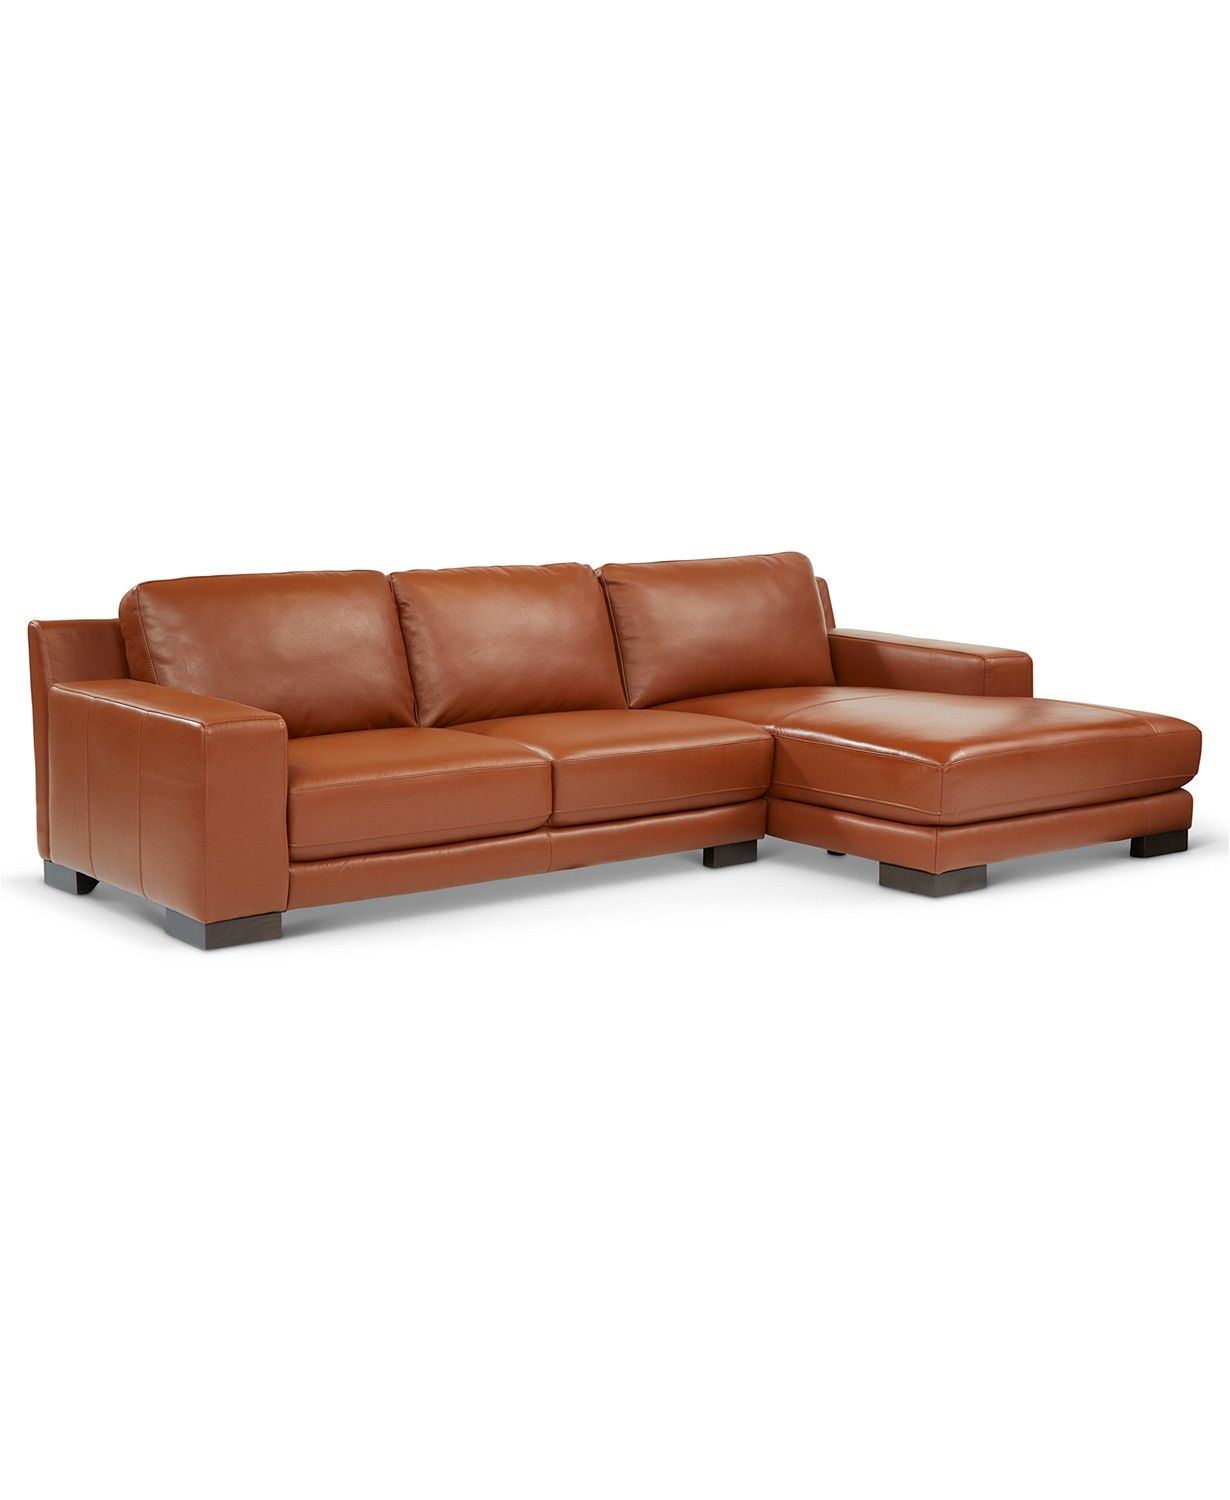 Furniture Darrium 2 Pc Leather Sofa With Chaise Created For Macy S Reviews Furniture Macy S Leather Sofa Leather Couches Living Room Sofa